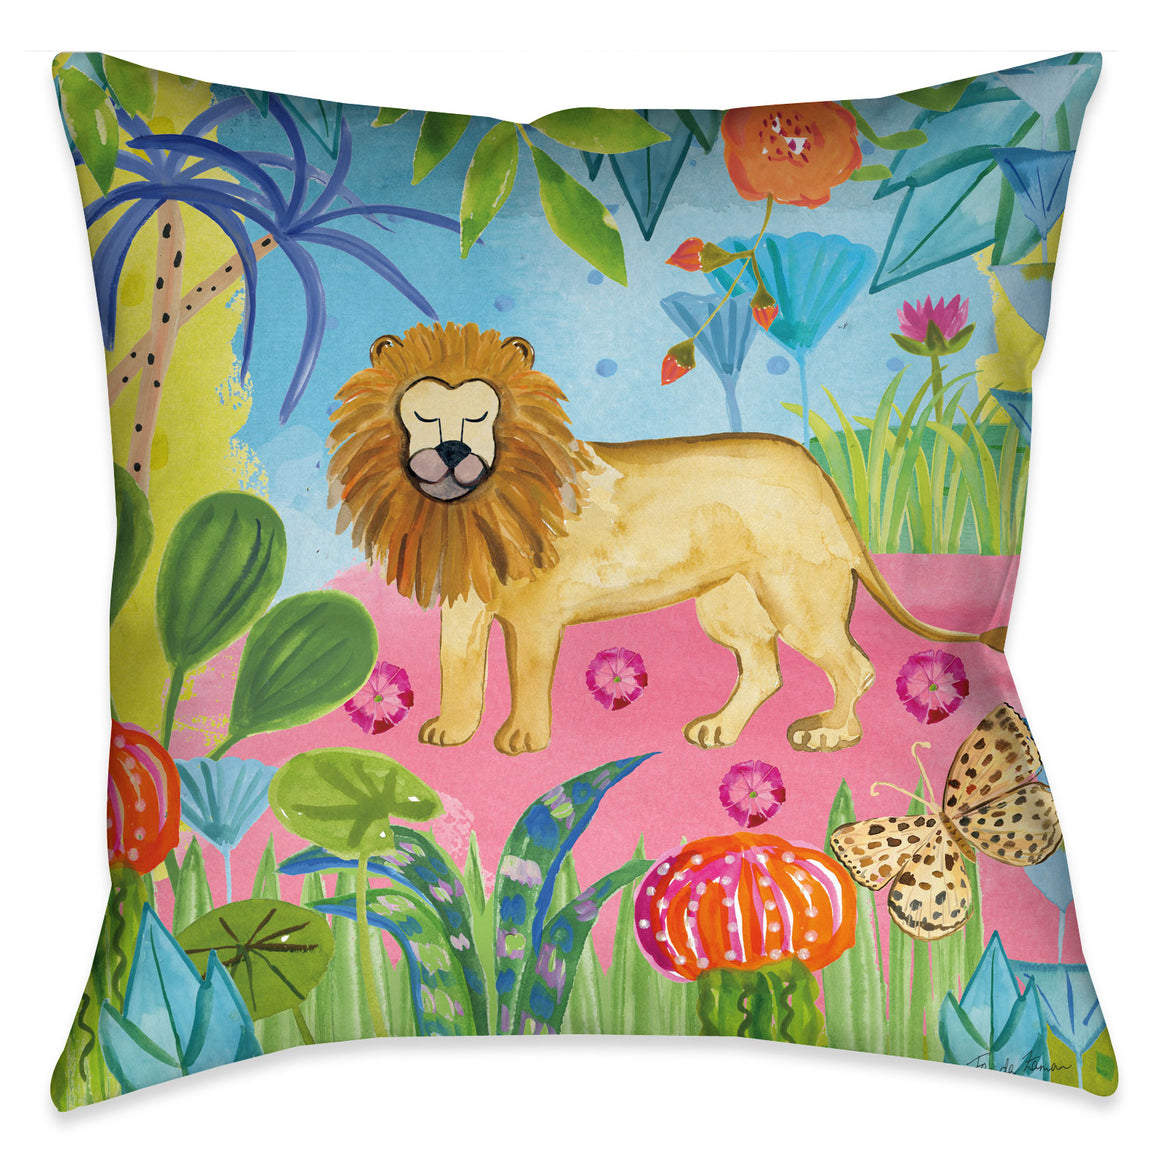 "The ""Jungle Lion Outdoor Decorative Pillow"" displays a playful scene of an lion in a colorful wild jungle."